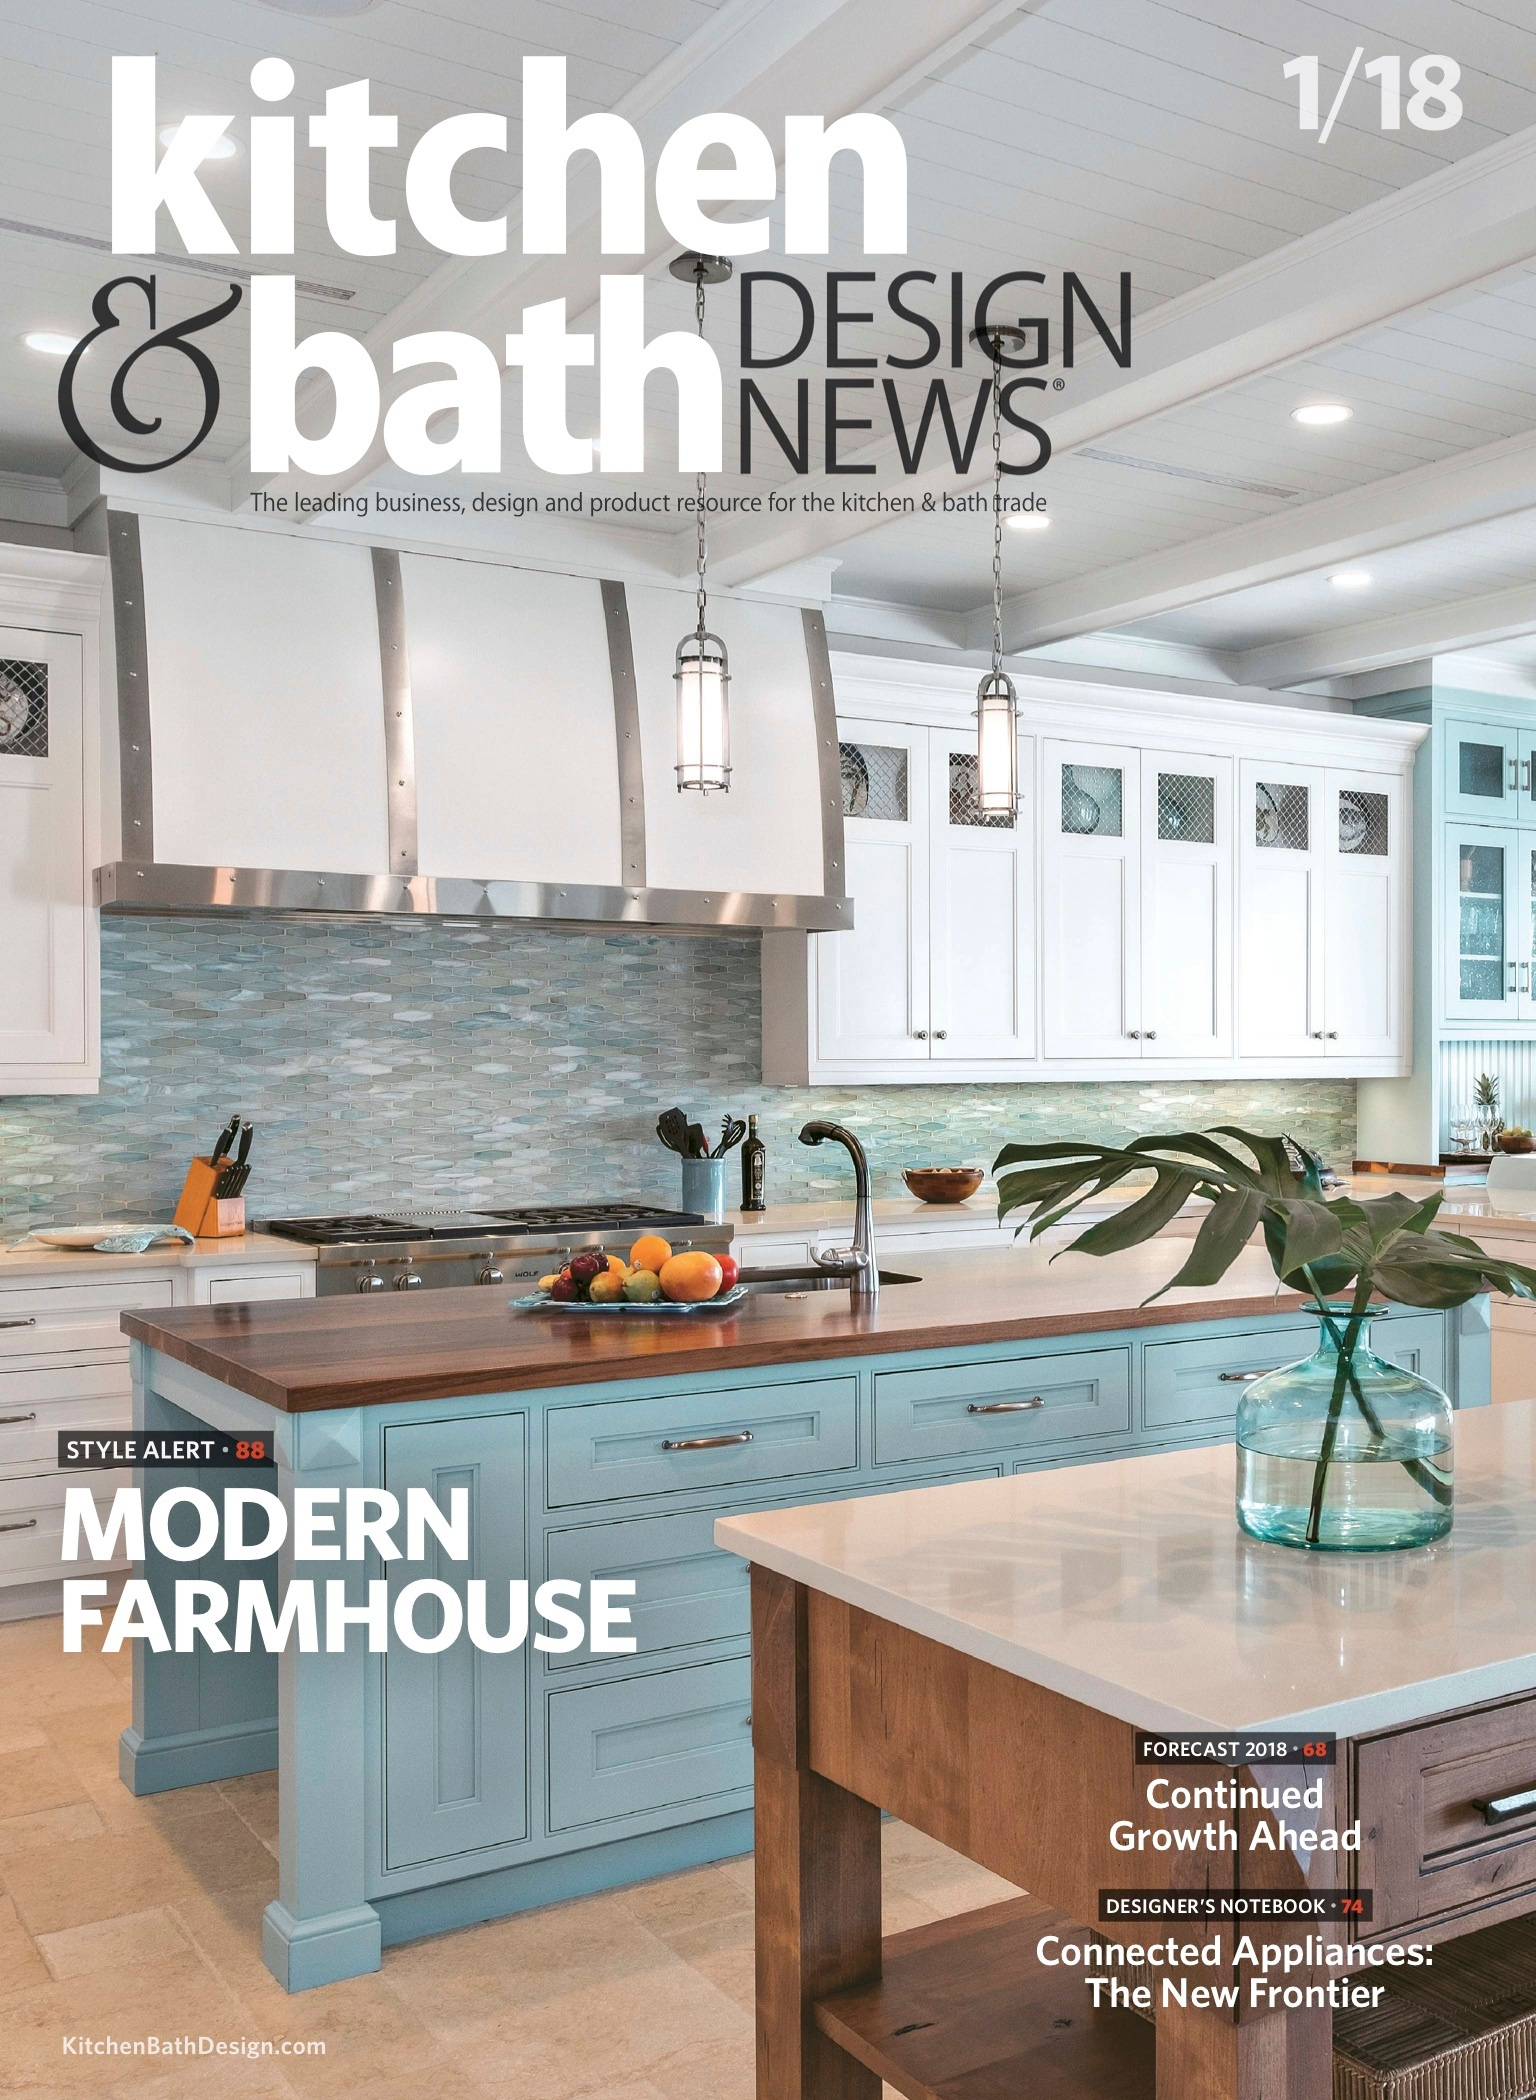 Kitchen And Bath Design News January 2018 Stalburg Design